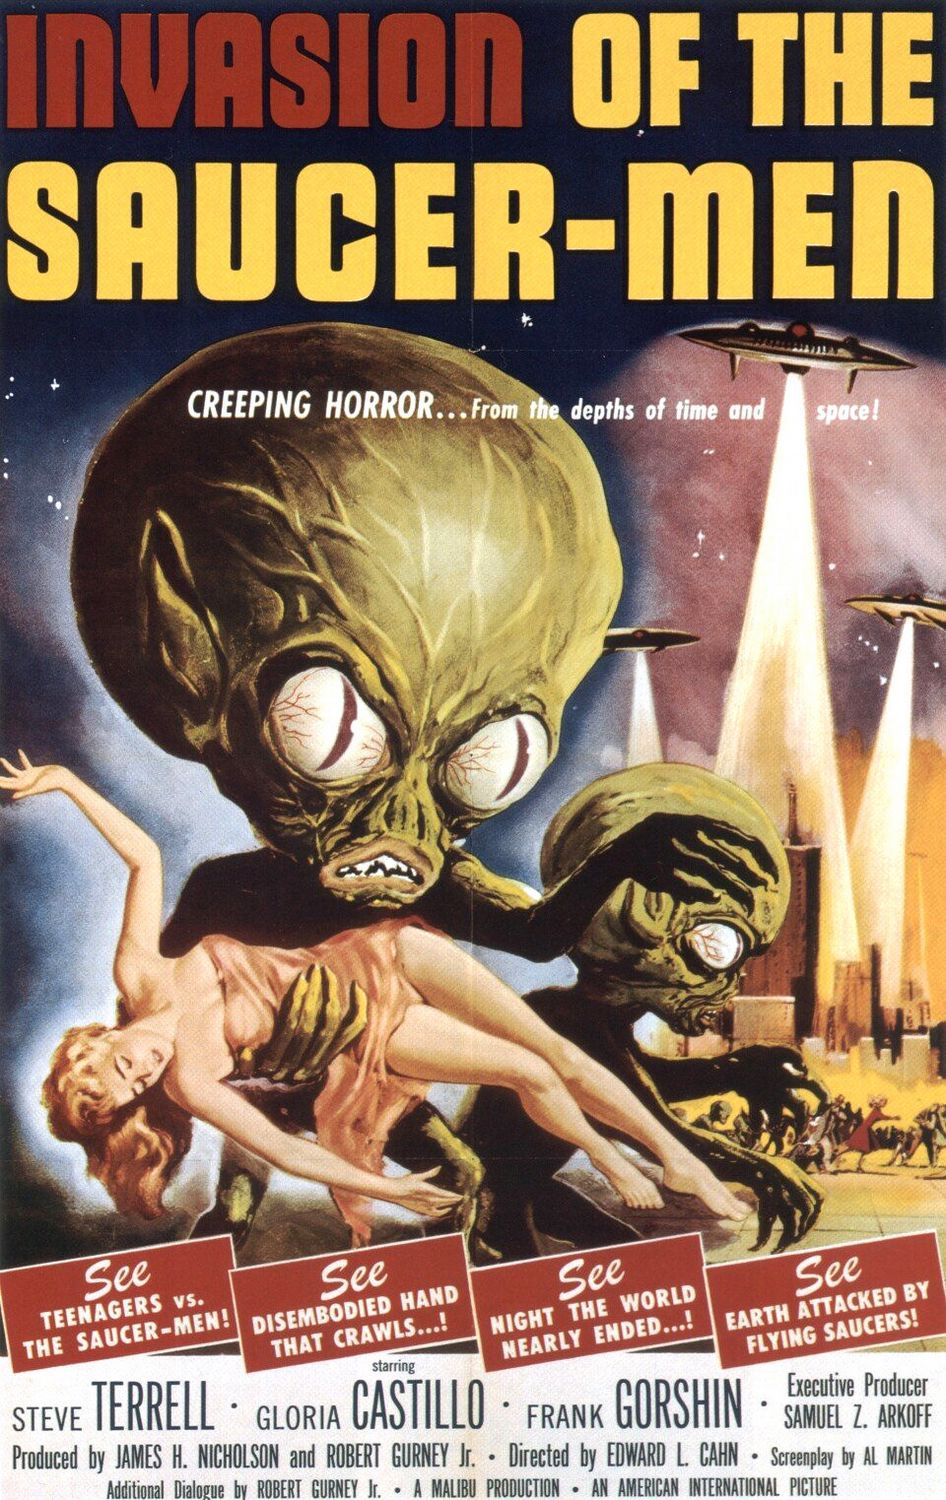 Old Classic Film - Invasion of the Saucer Men - Invasori da un altro Mondo (1957) - Steve Terrell - Gloria Castillo - Frank Gorshin - produced by James H. Nicholson and Robert Gurney Jr. Directed by Edward L. Cahn